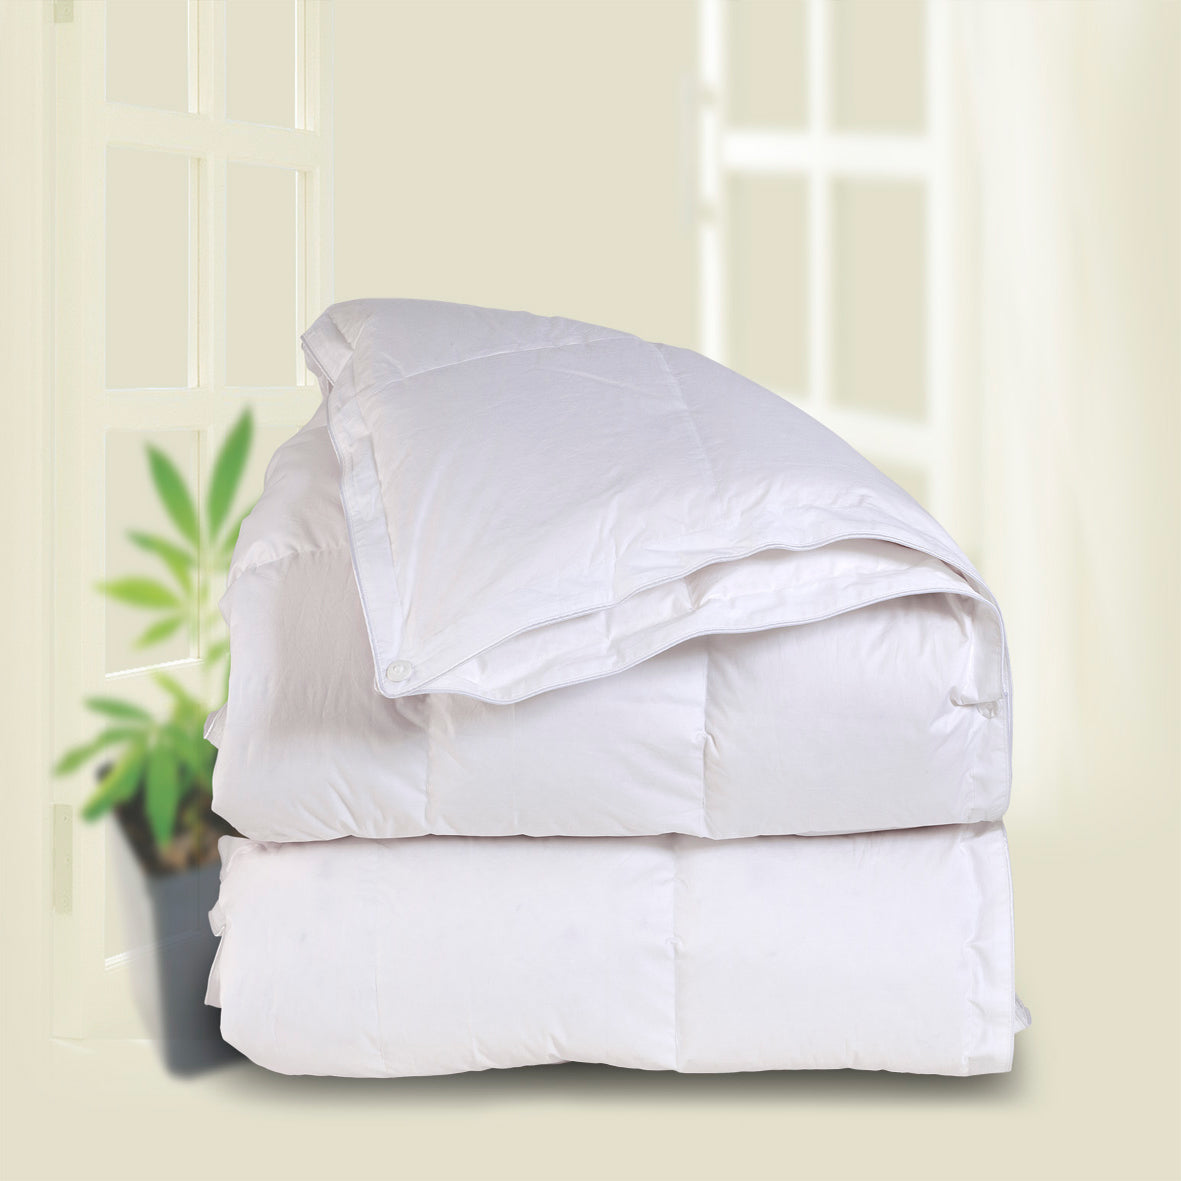 3-1 anytime 600 fill power white goose down comforter, downright, insert, - adorn.house